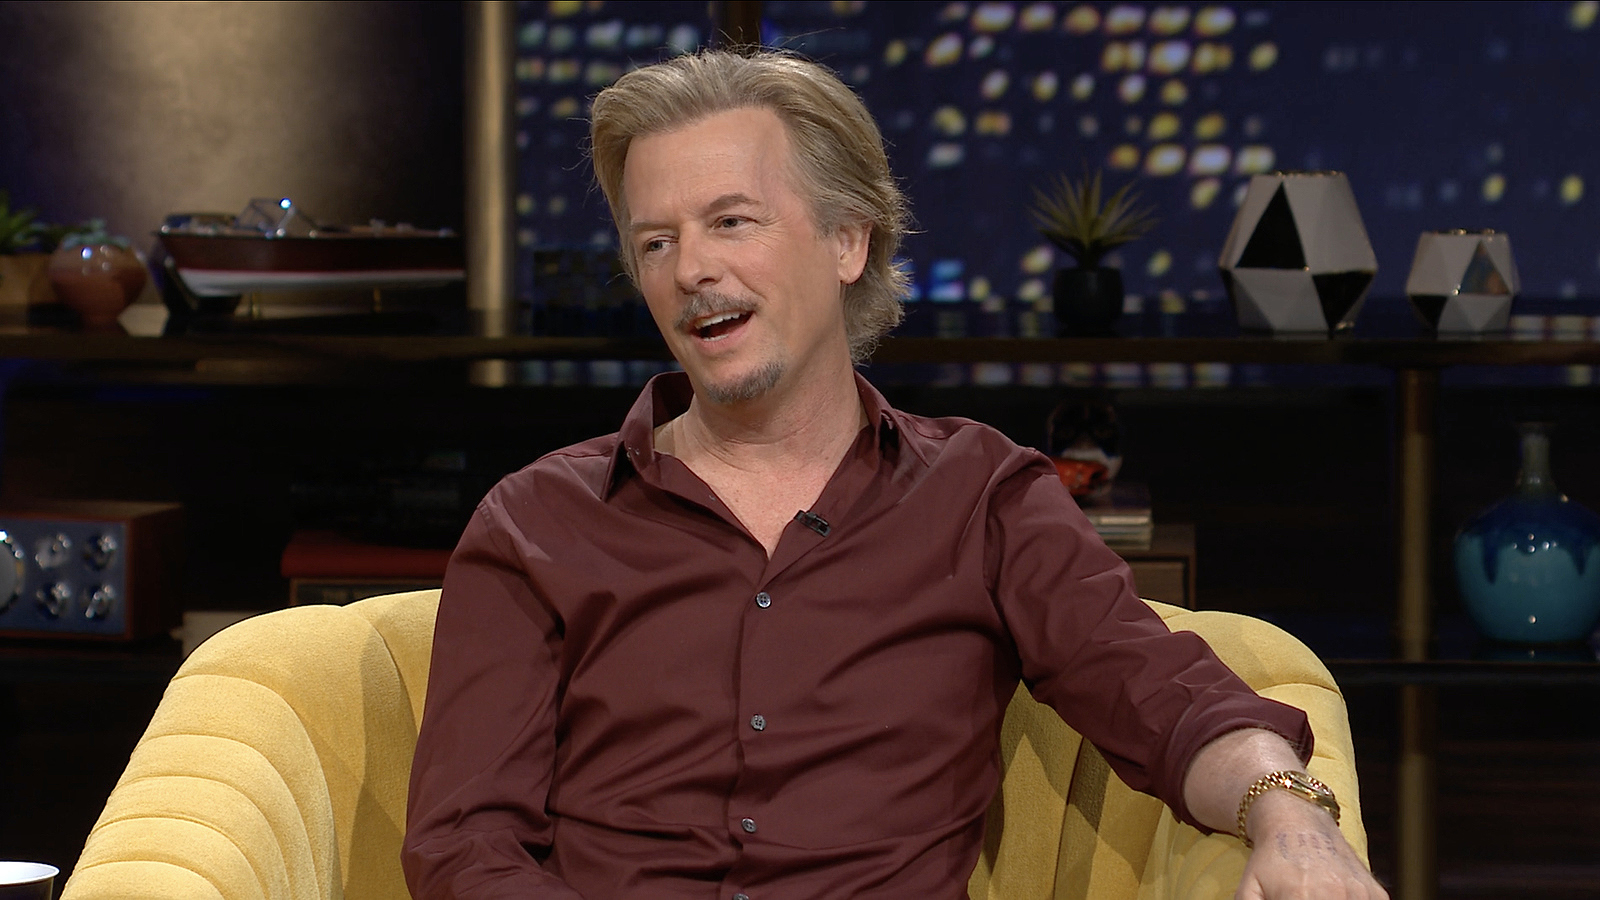 NCS_Comedy-Central_David-Spade_LightsOut_JPConnelly_013